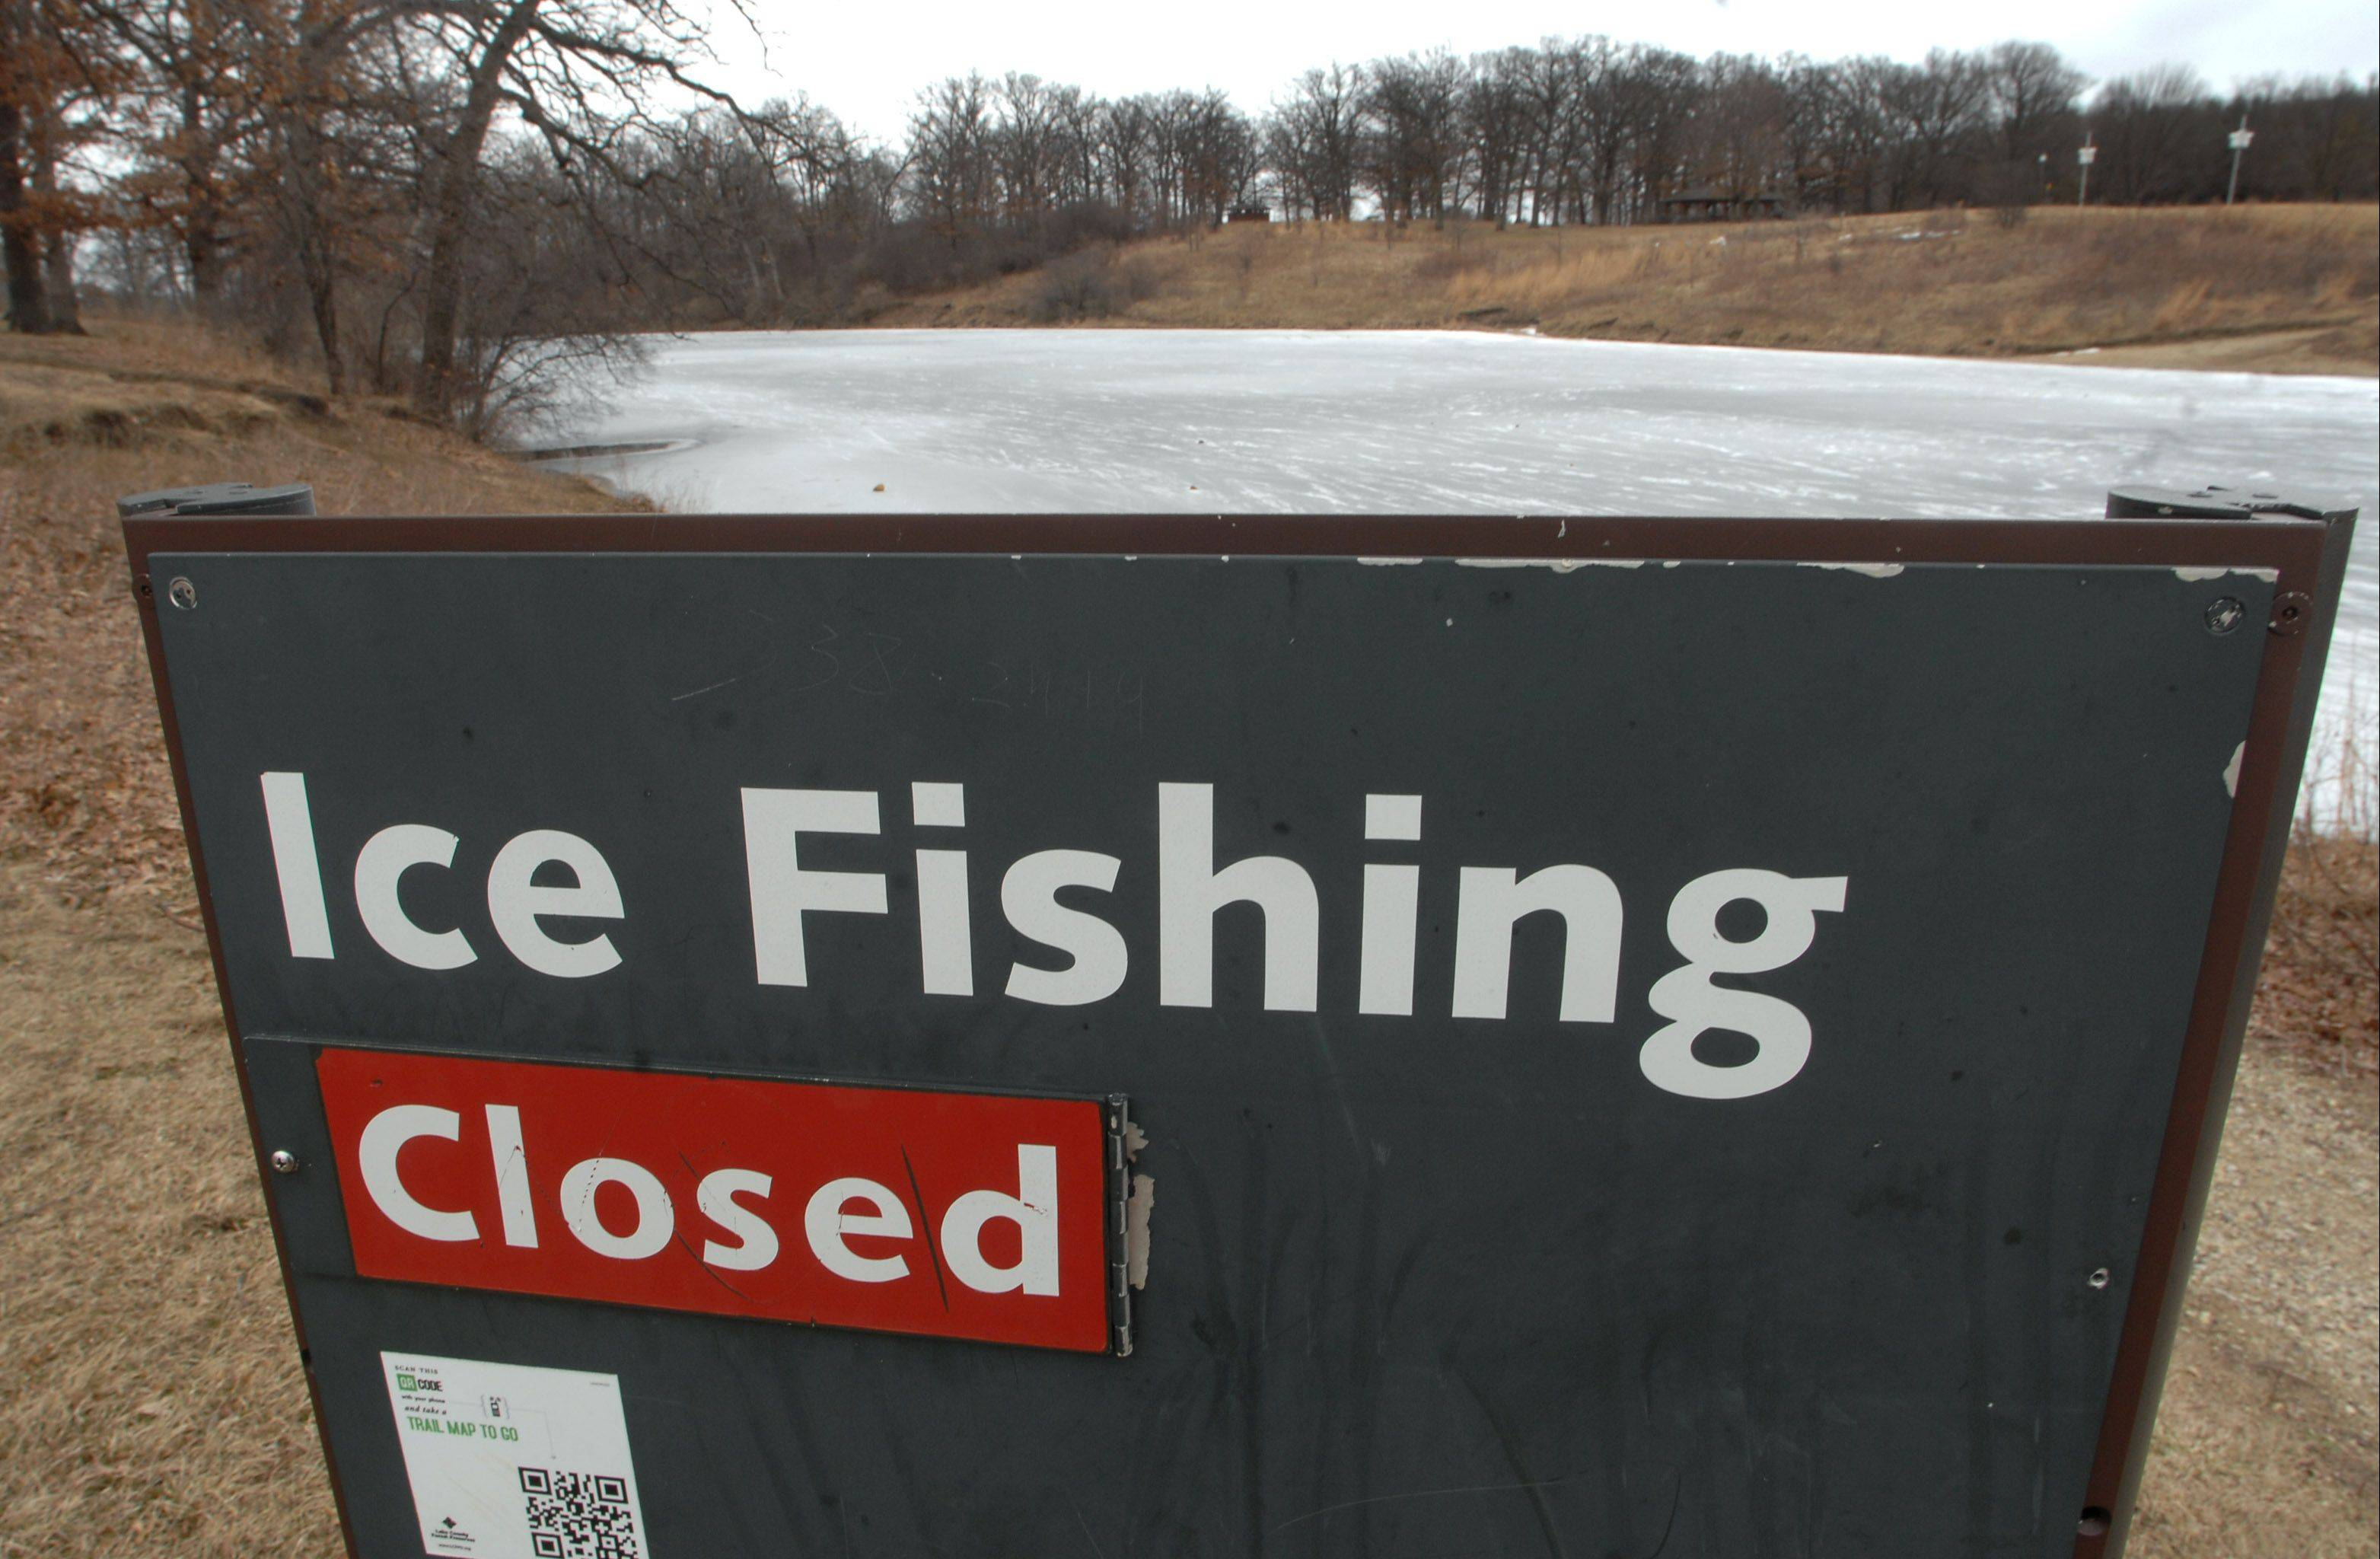 Crazy temps make ice fishing dangerous in suburbs